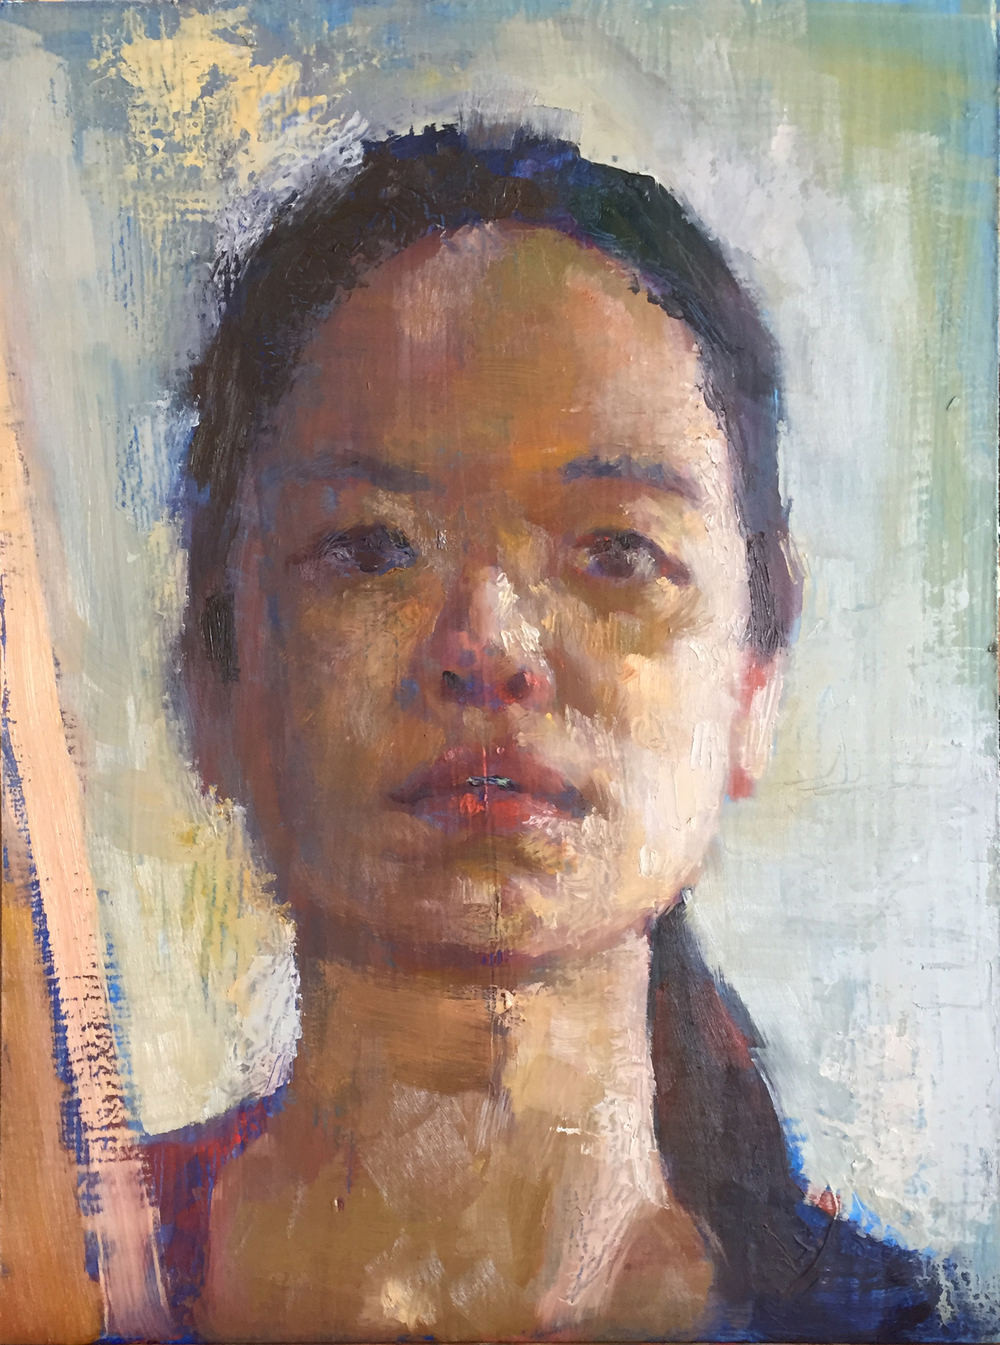 A self portrait of Jia Sung.